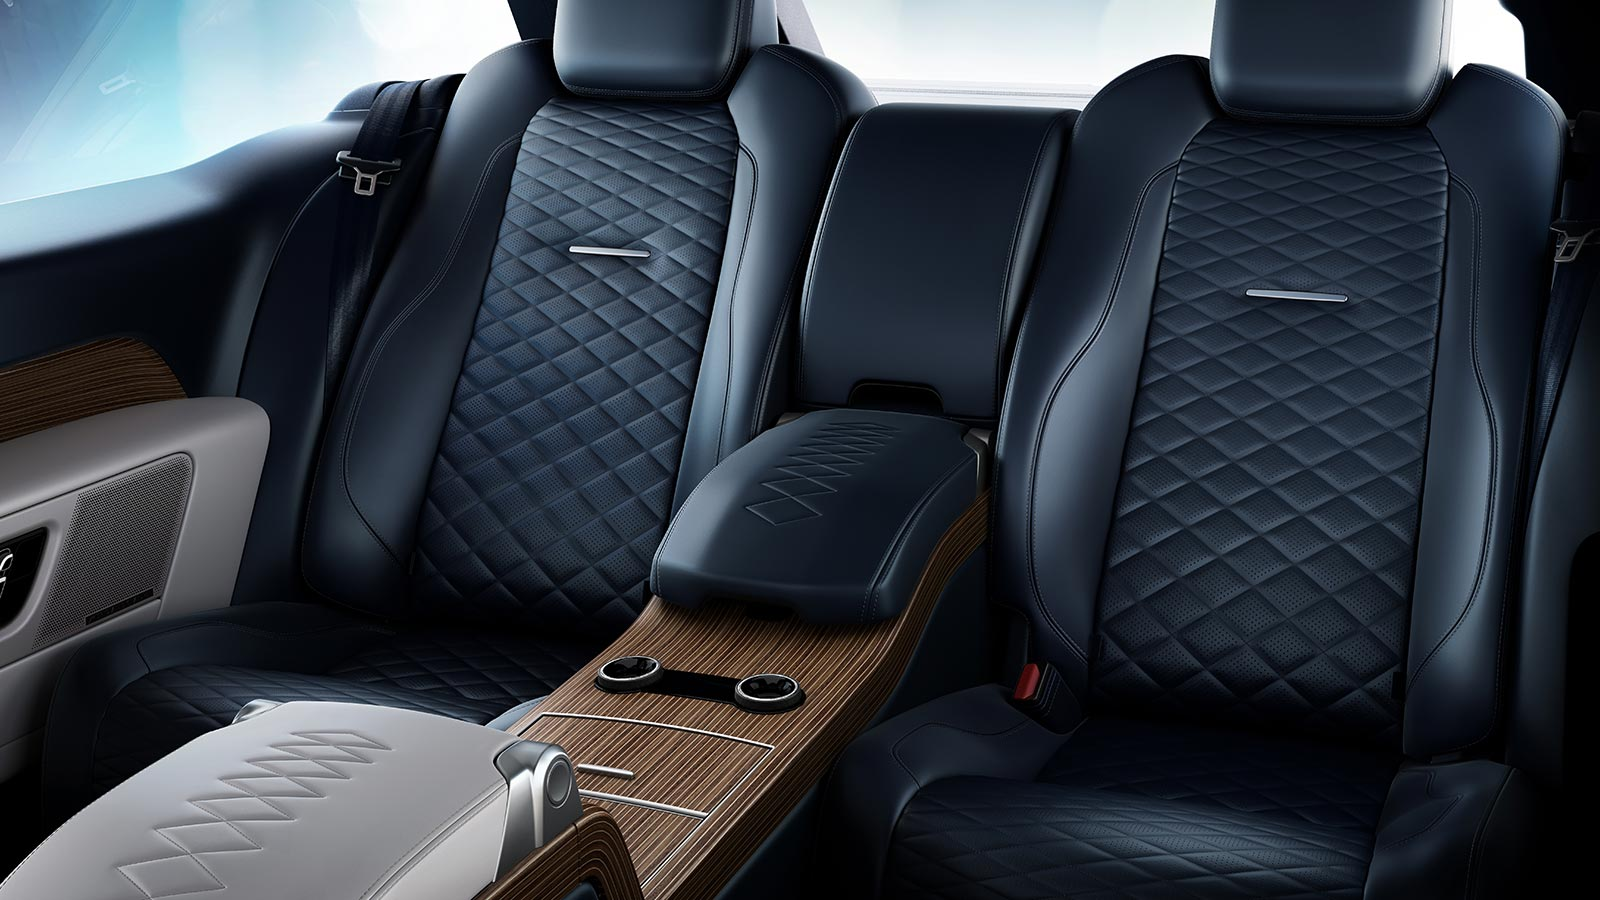 The Range Rover SV Coupe rear seats in Eclipse with unique Diamond Quilted design